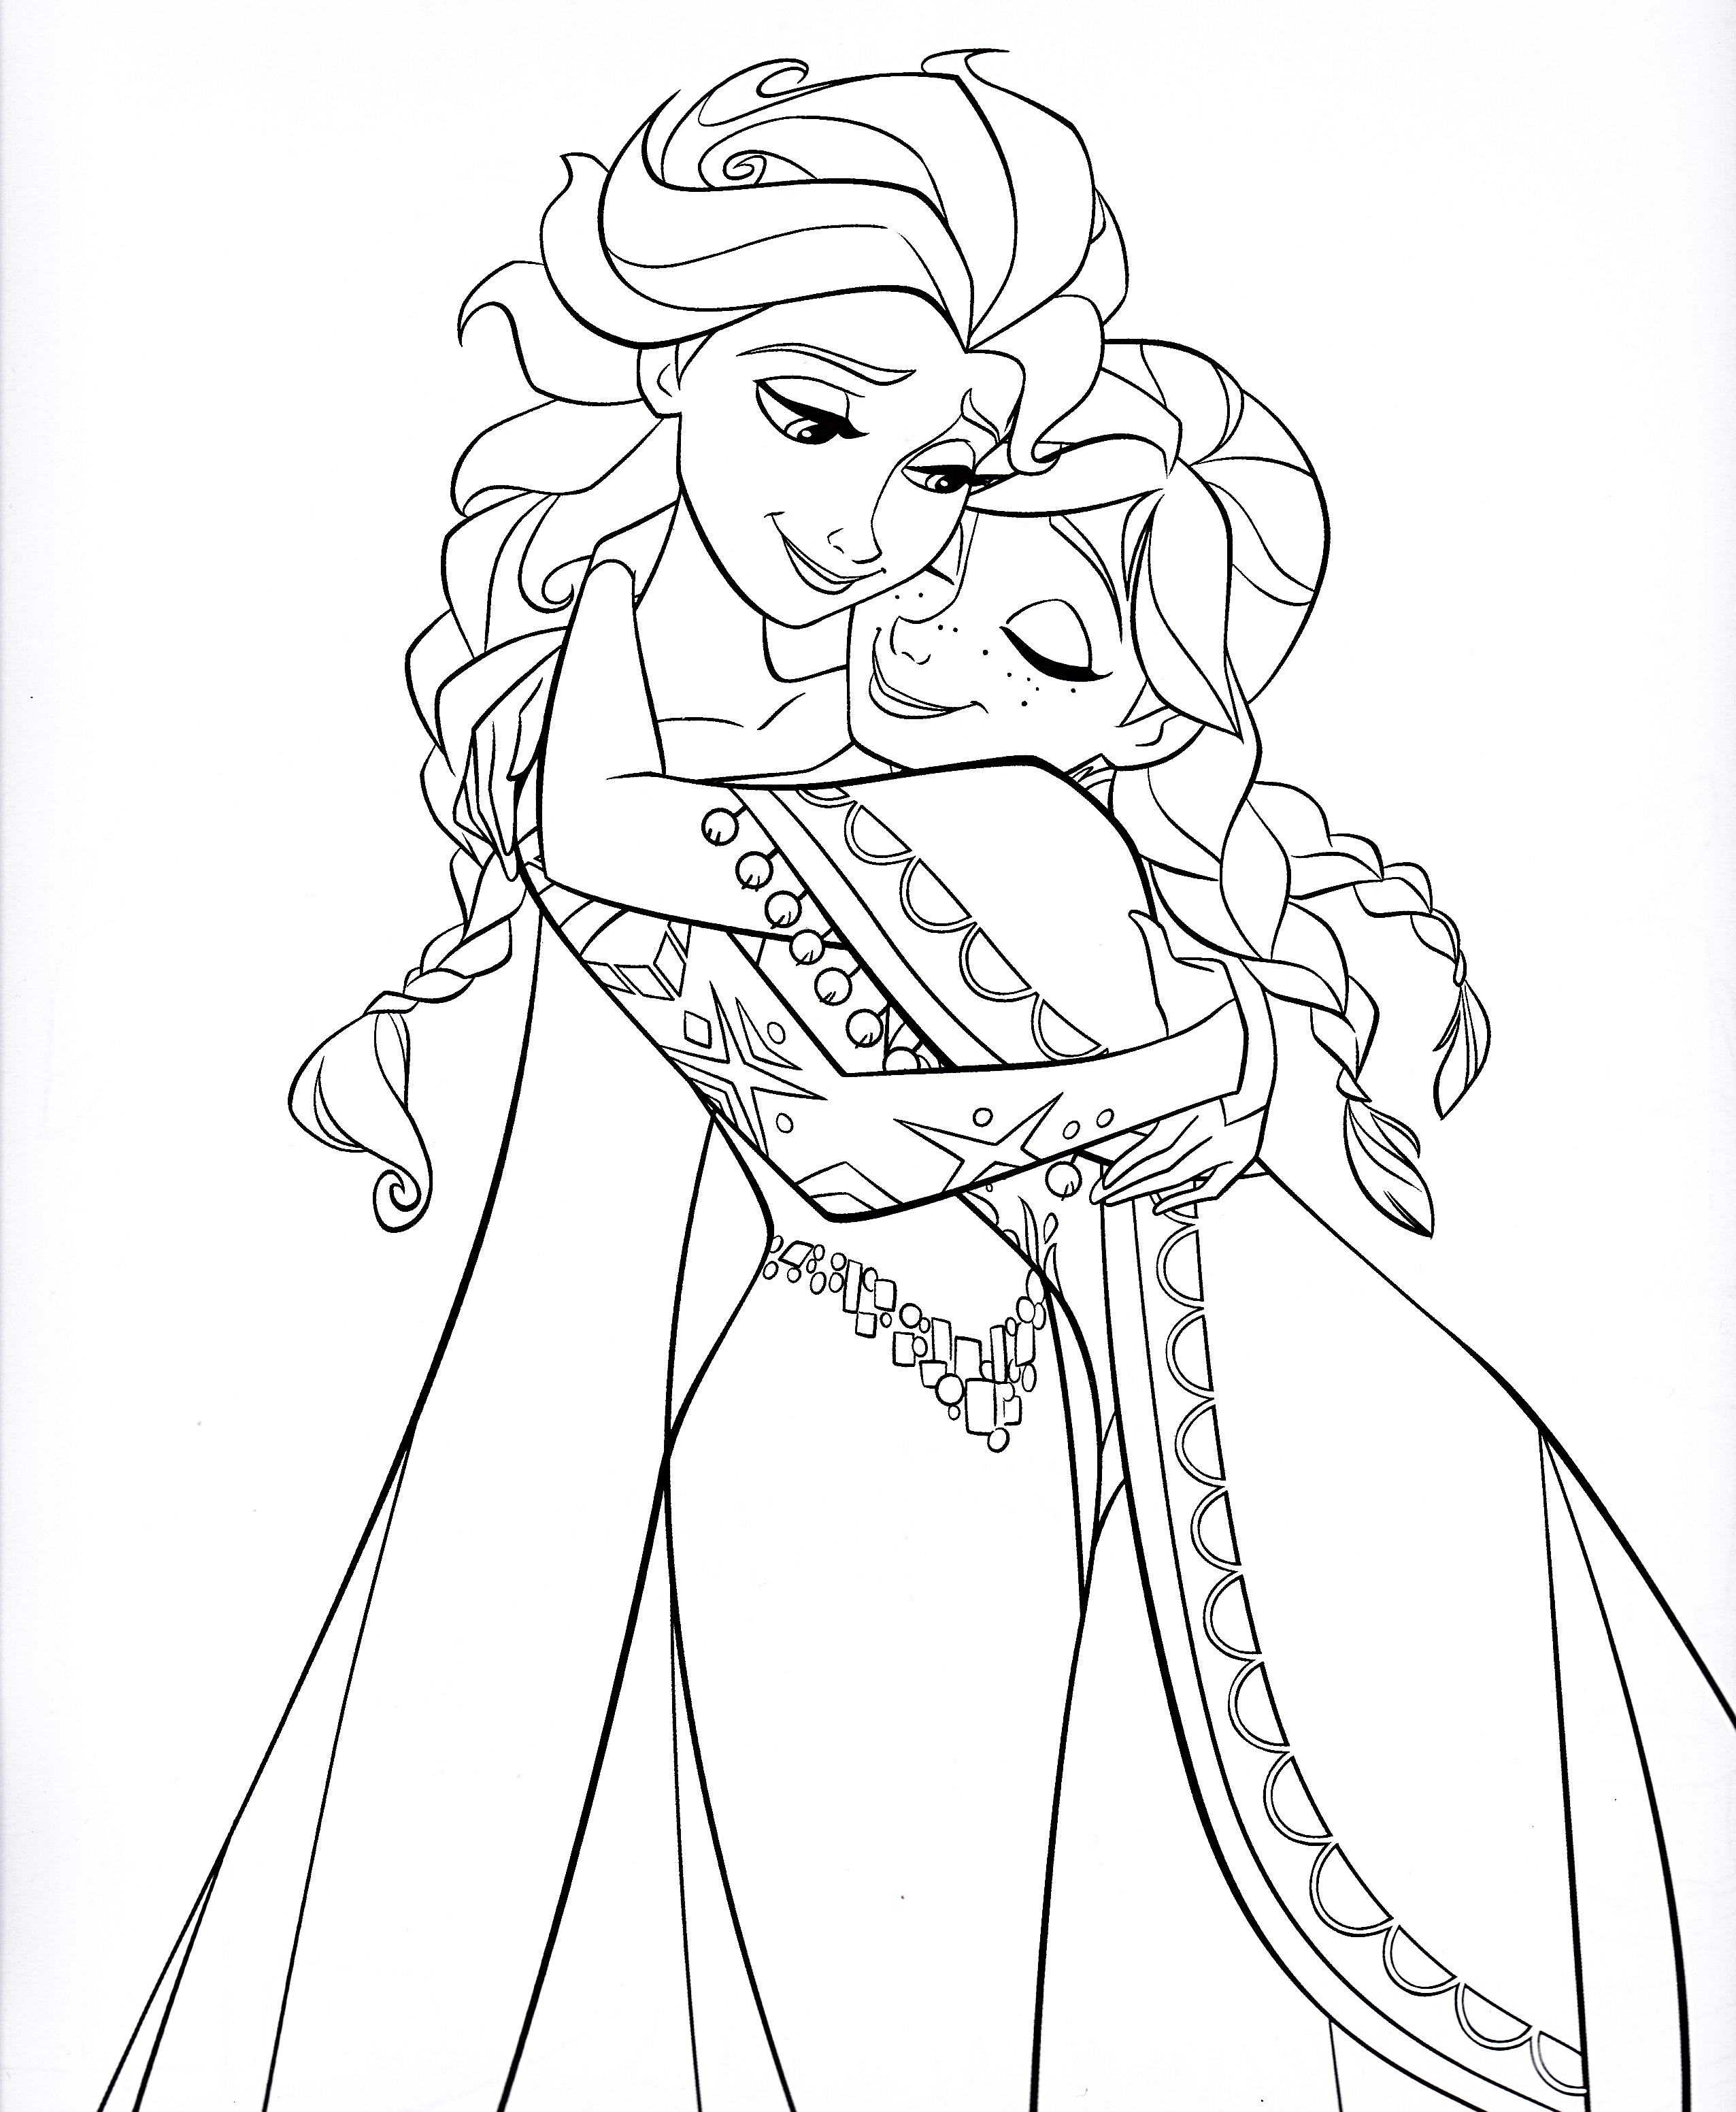 walt disney characters images walt disney coloring pages queen elsa princess anna hd